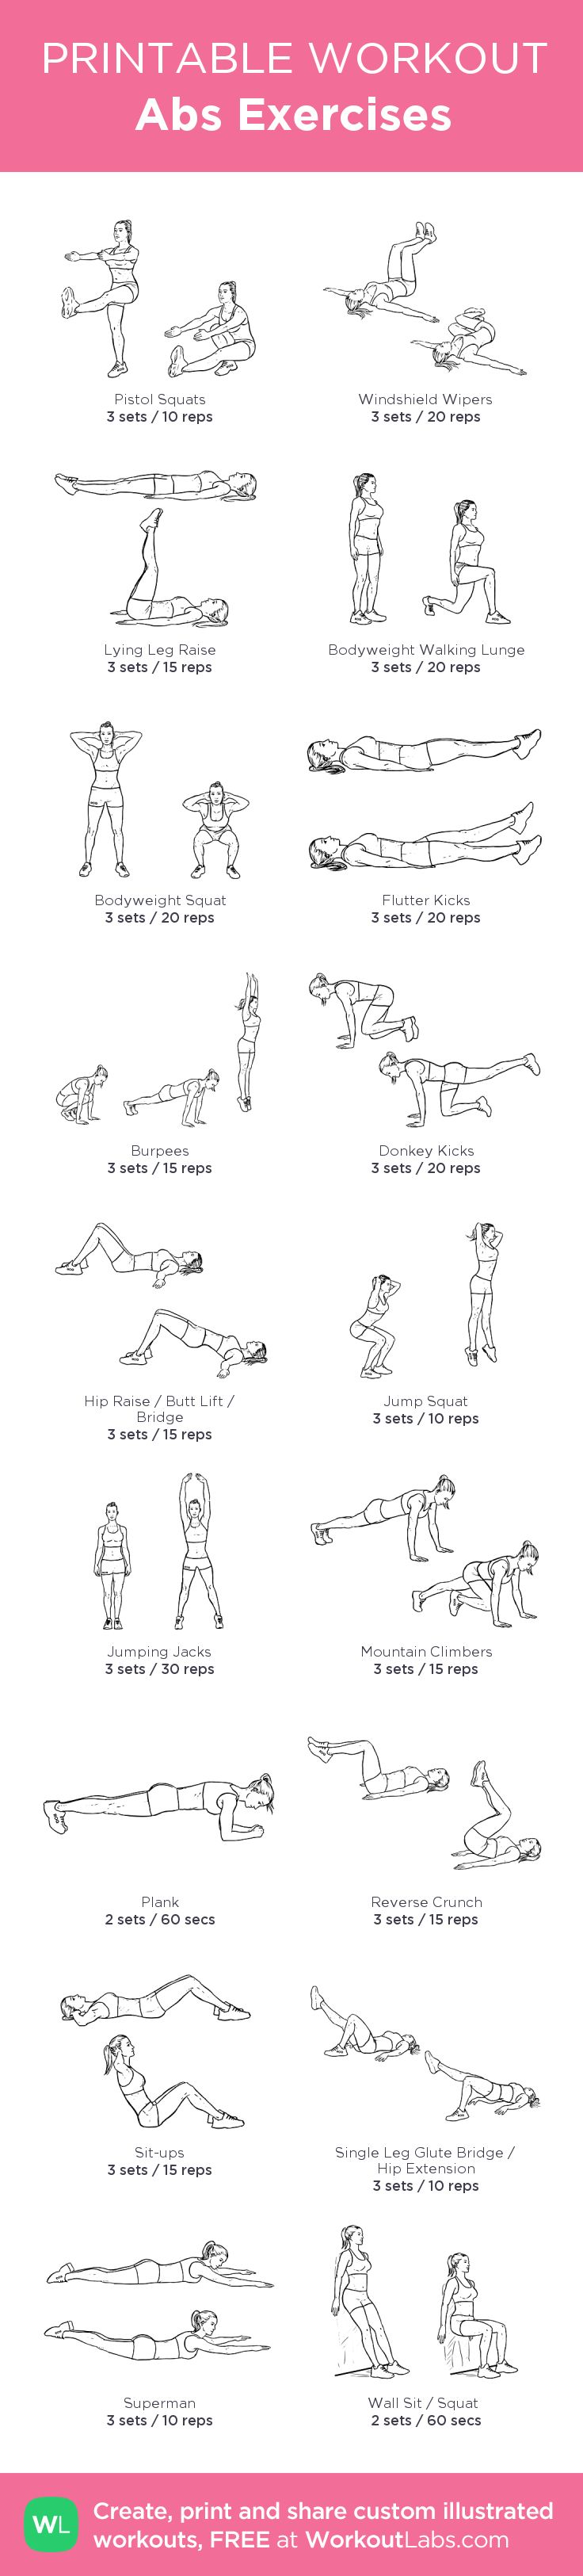 Abs Exercises:my custom printable workout by @WorkoutLabs #workoutlabs #customworkout